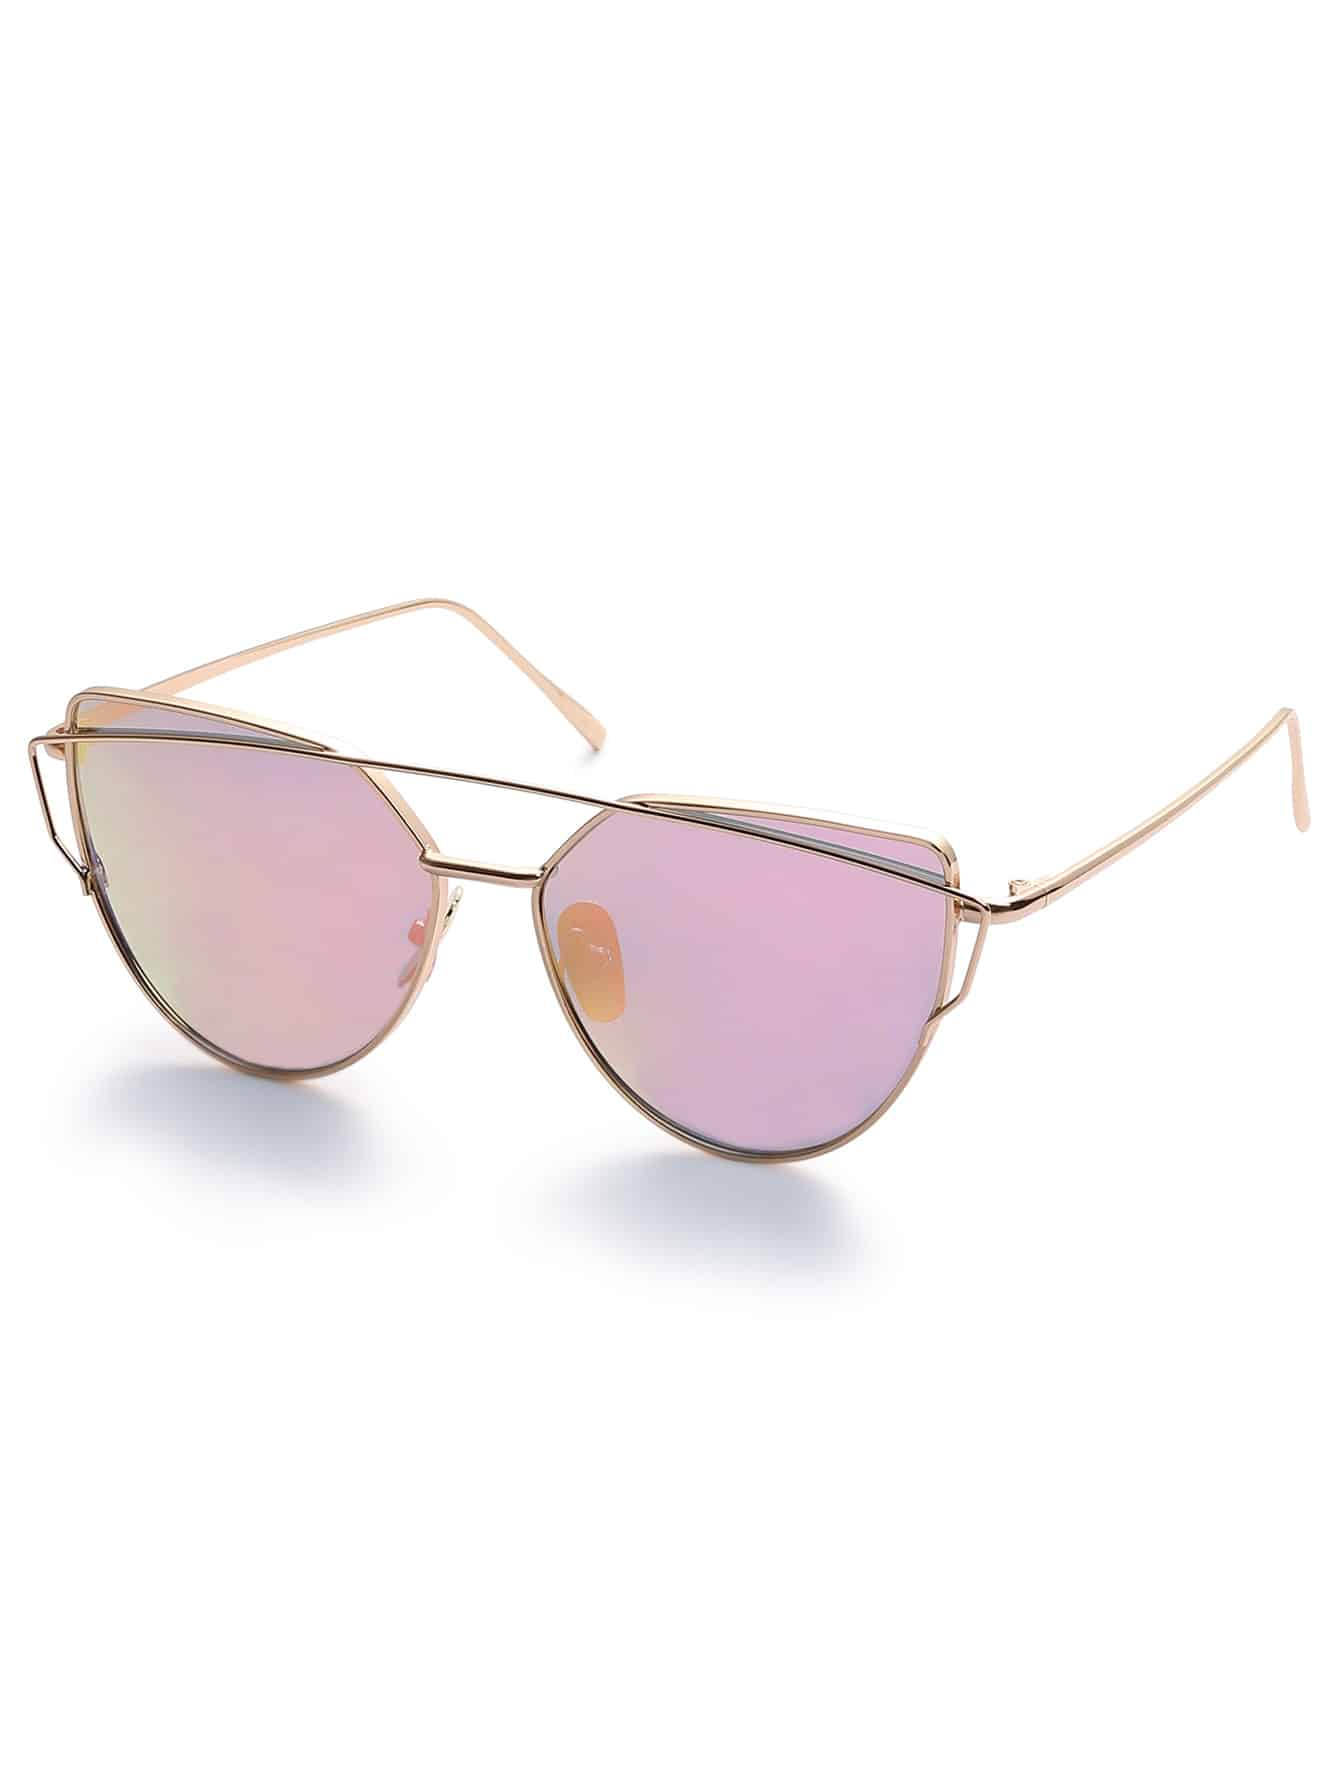 Gold Metal Frame Double Bridge Pink Lens Sunglasses -SheIn ...